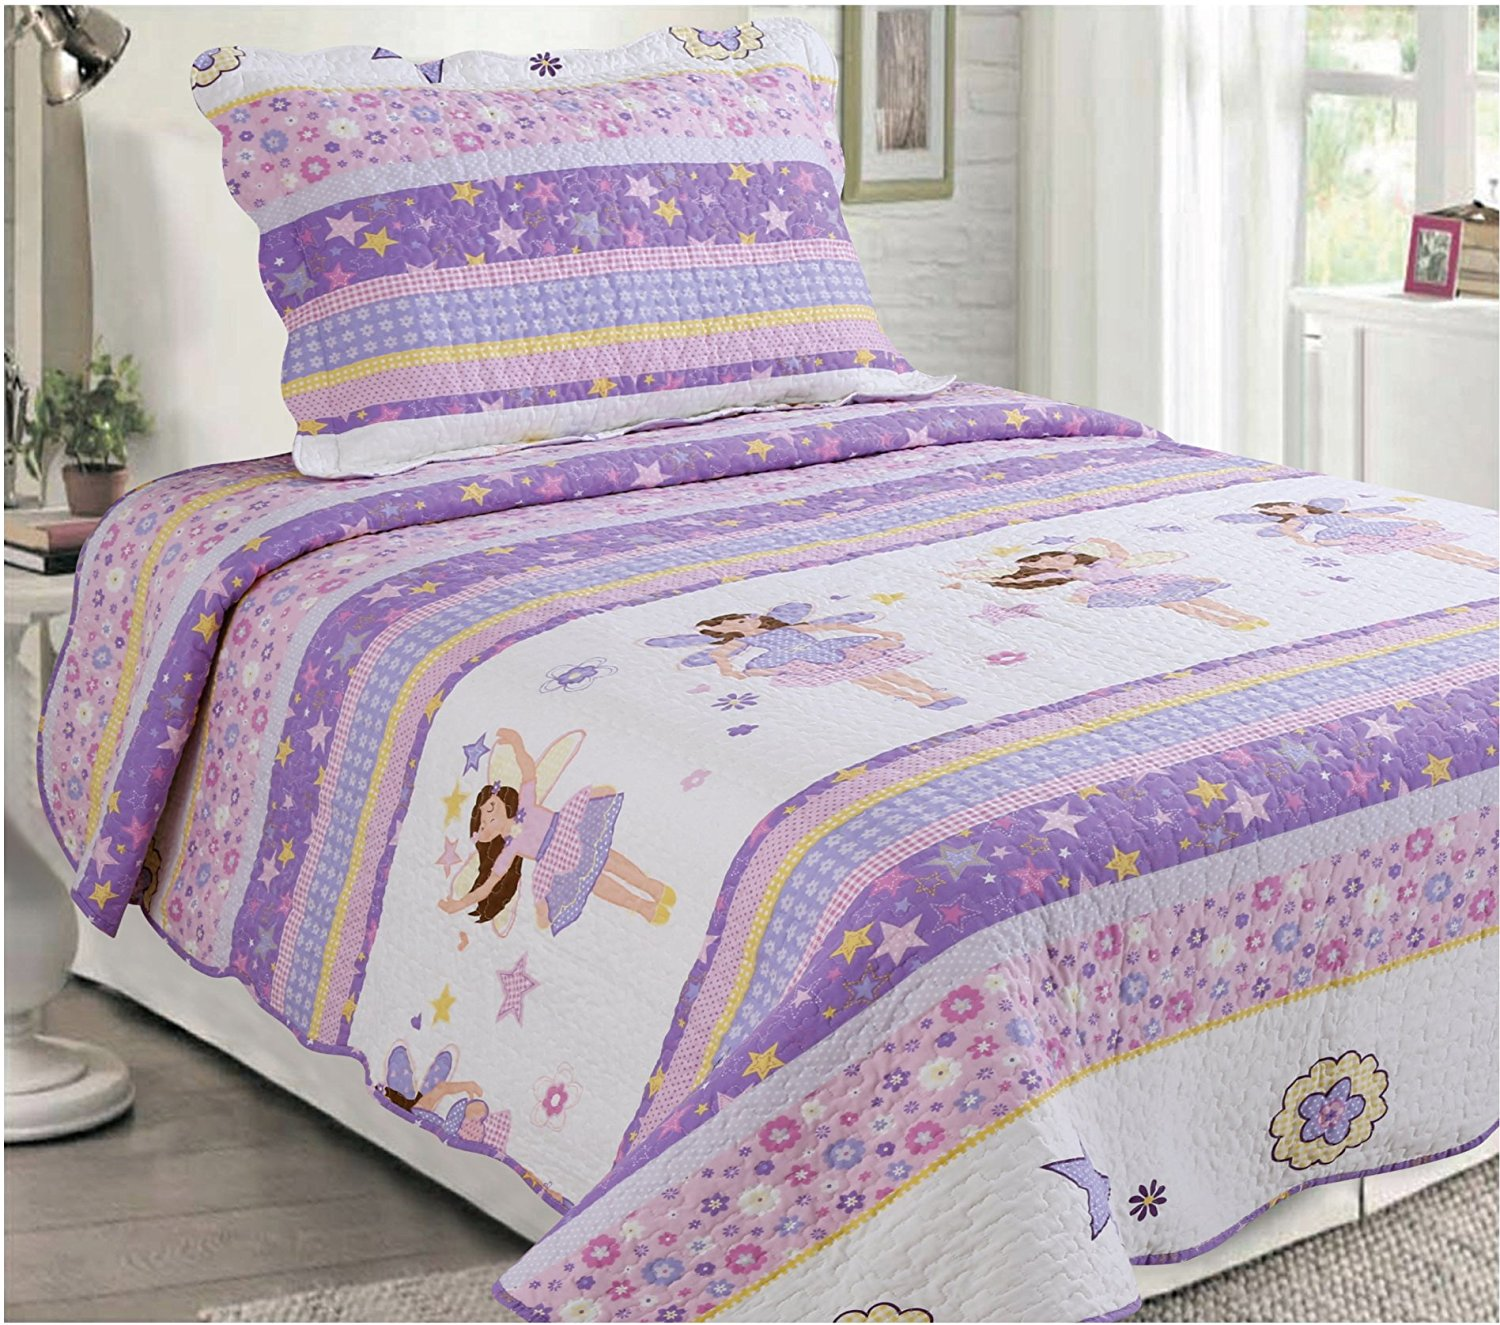 Mk Collection 2 Pc Bedspread Teens/girls Pink Purple Stars Flowers New